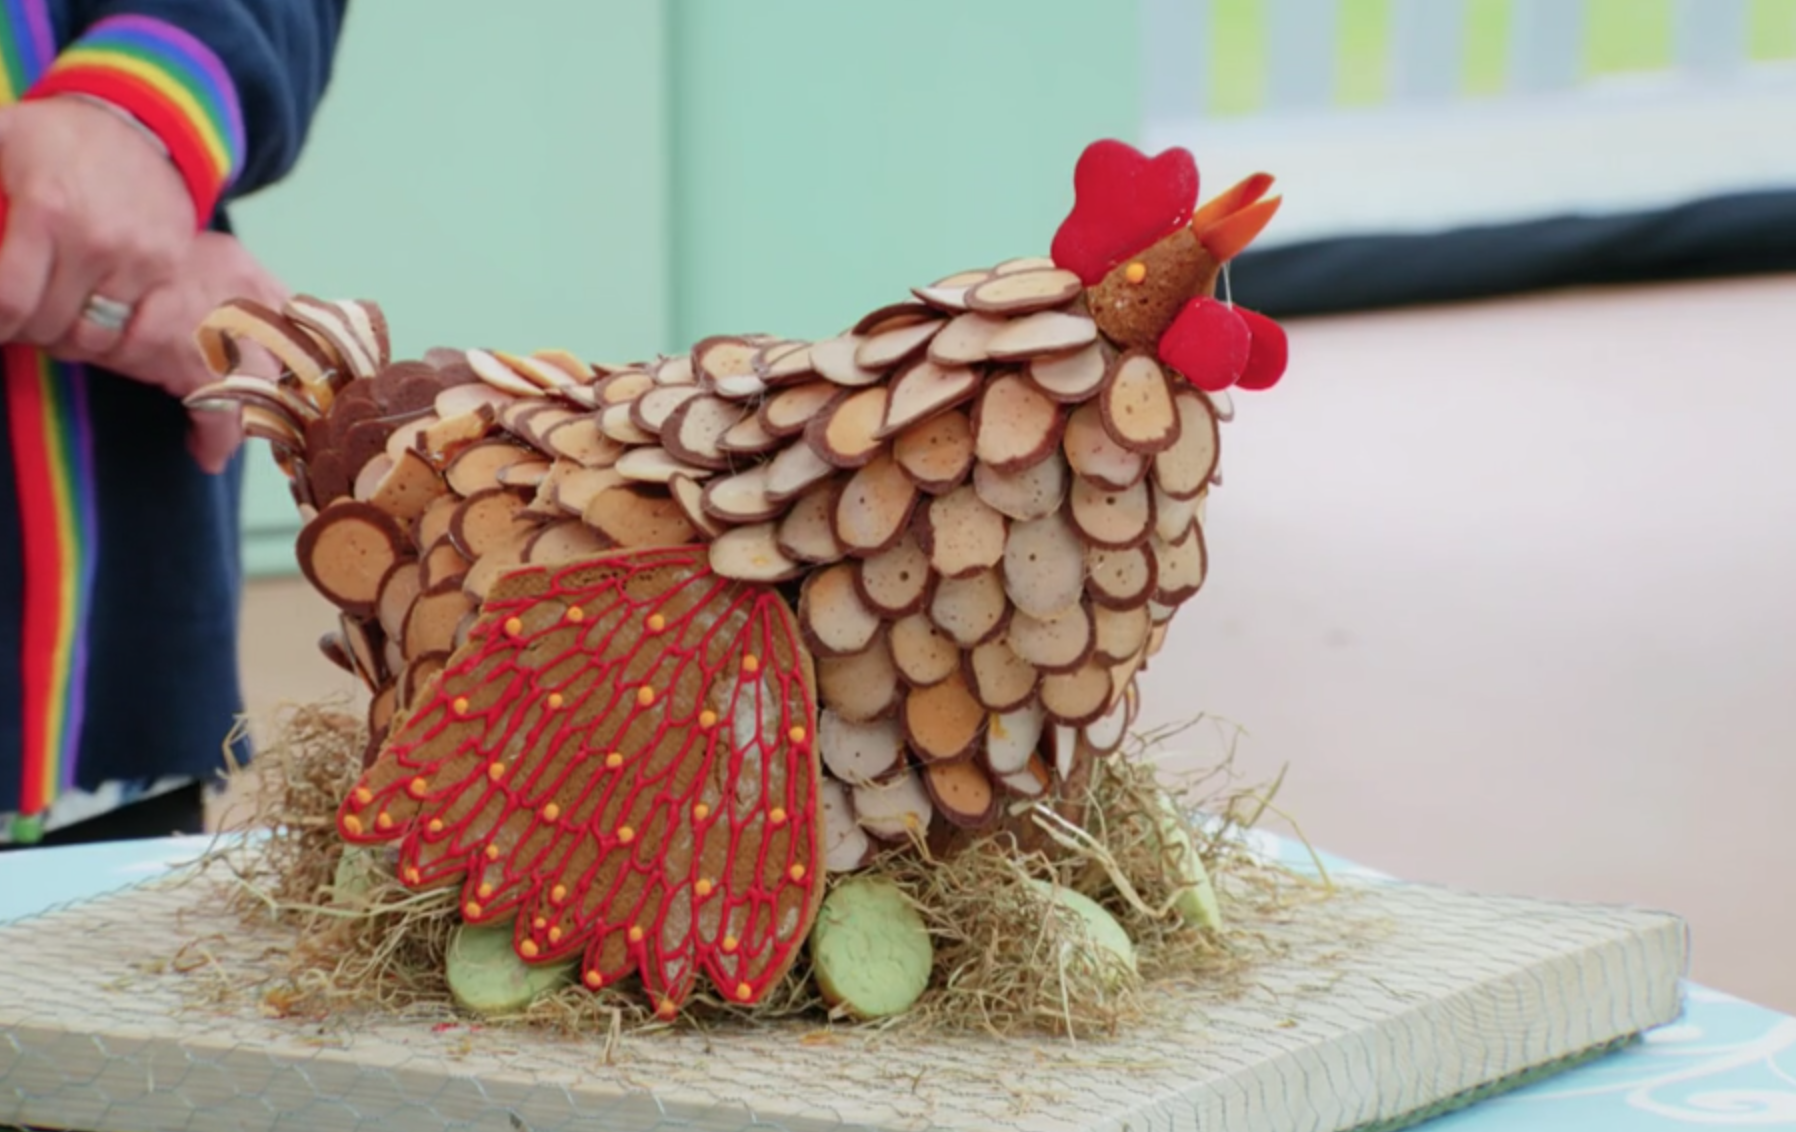 'Great British Bake Off' 2019 Episode 2 Was All About This Chicken Made of Biscuits